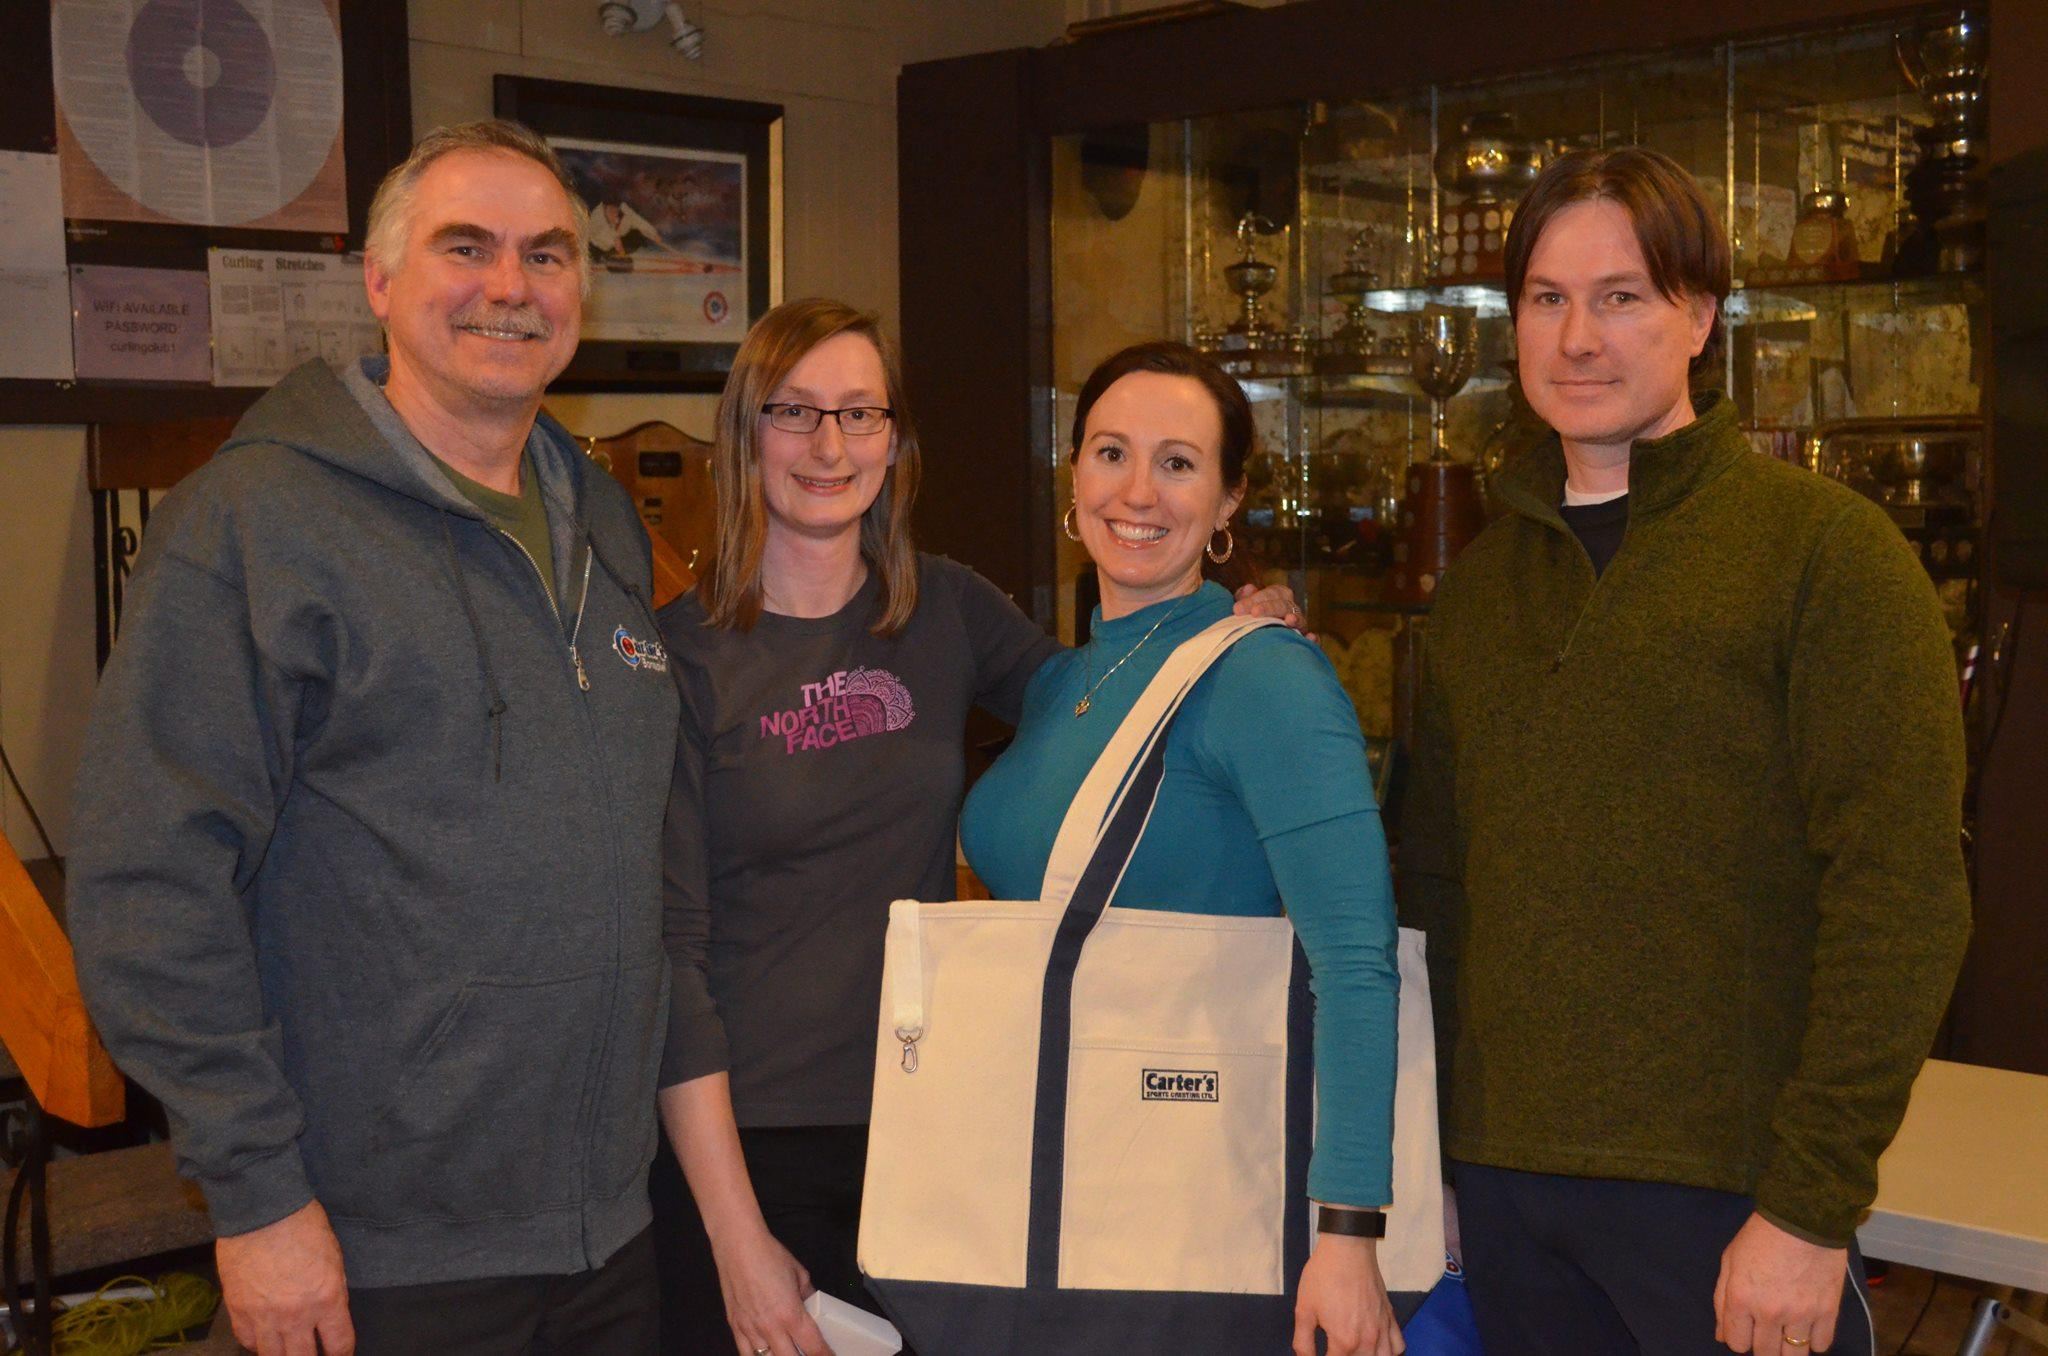 Carter's Sports Cresting Bonspiel 2016 - A Division Winner - Paul Hawkes, Denise Demone, John Greer, Theresa Hawkes, (spare Ted MacKinnon)